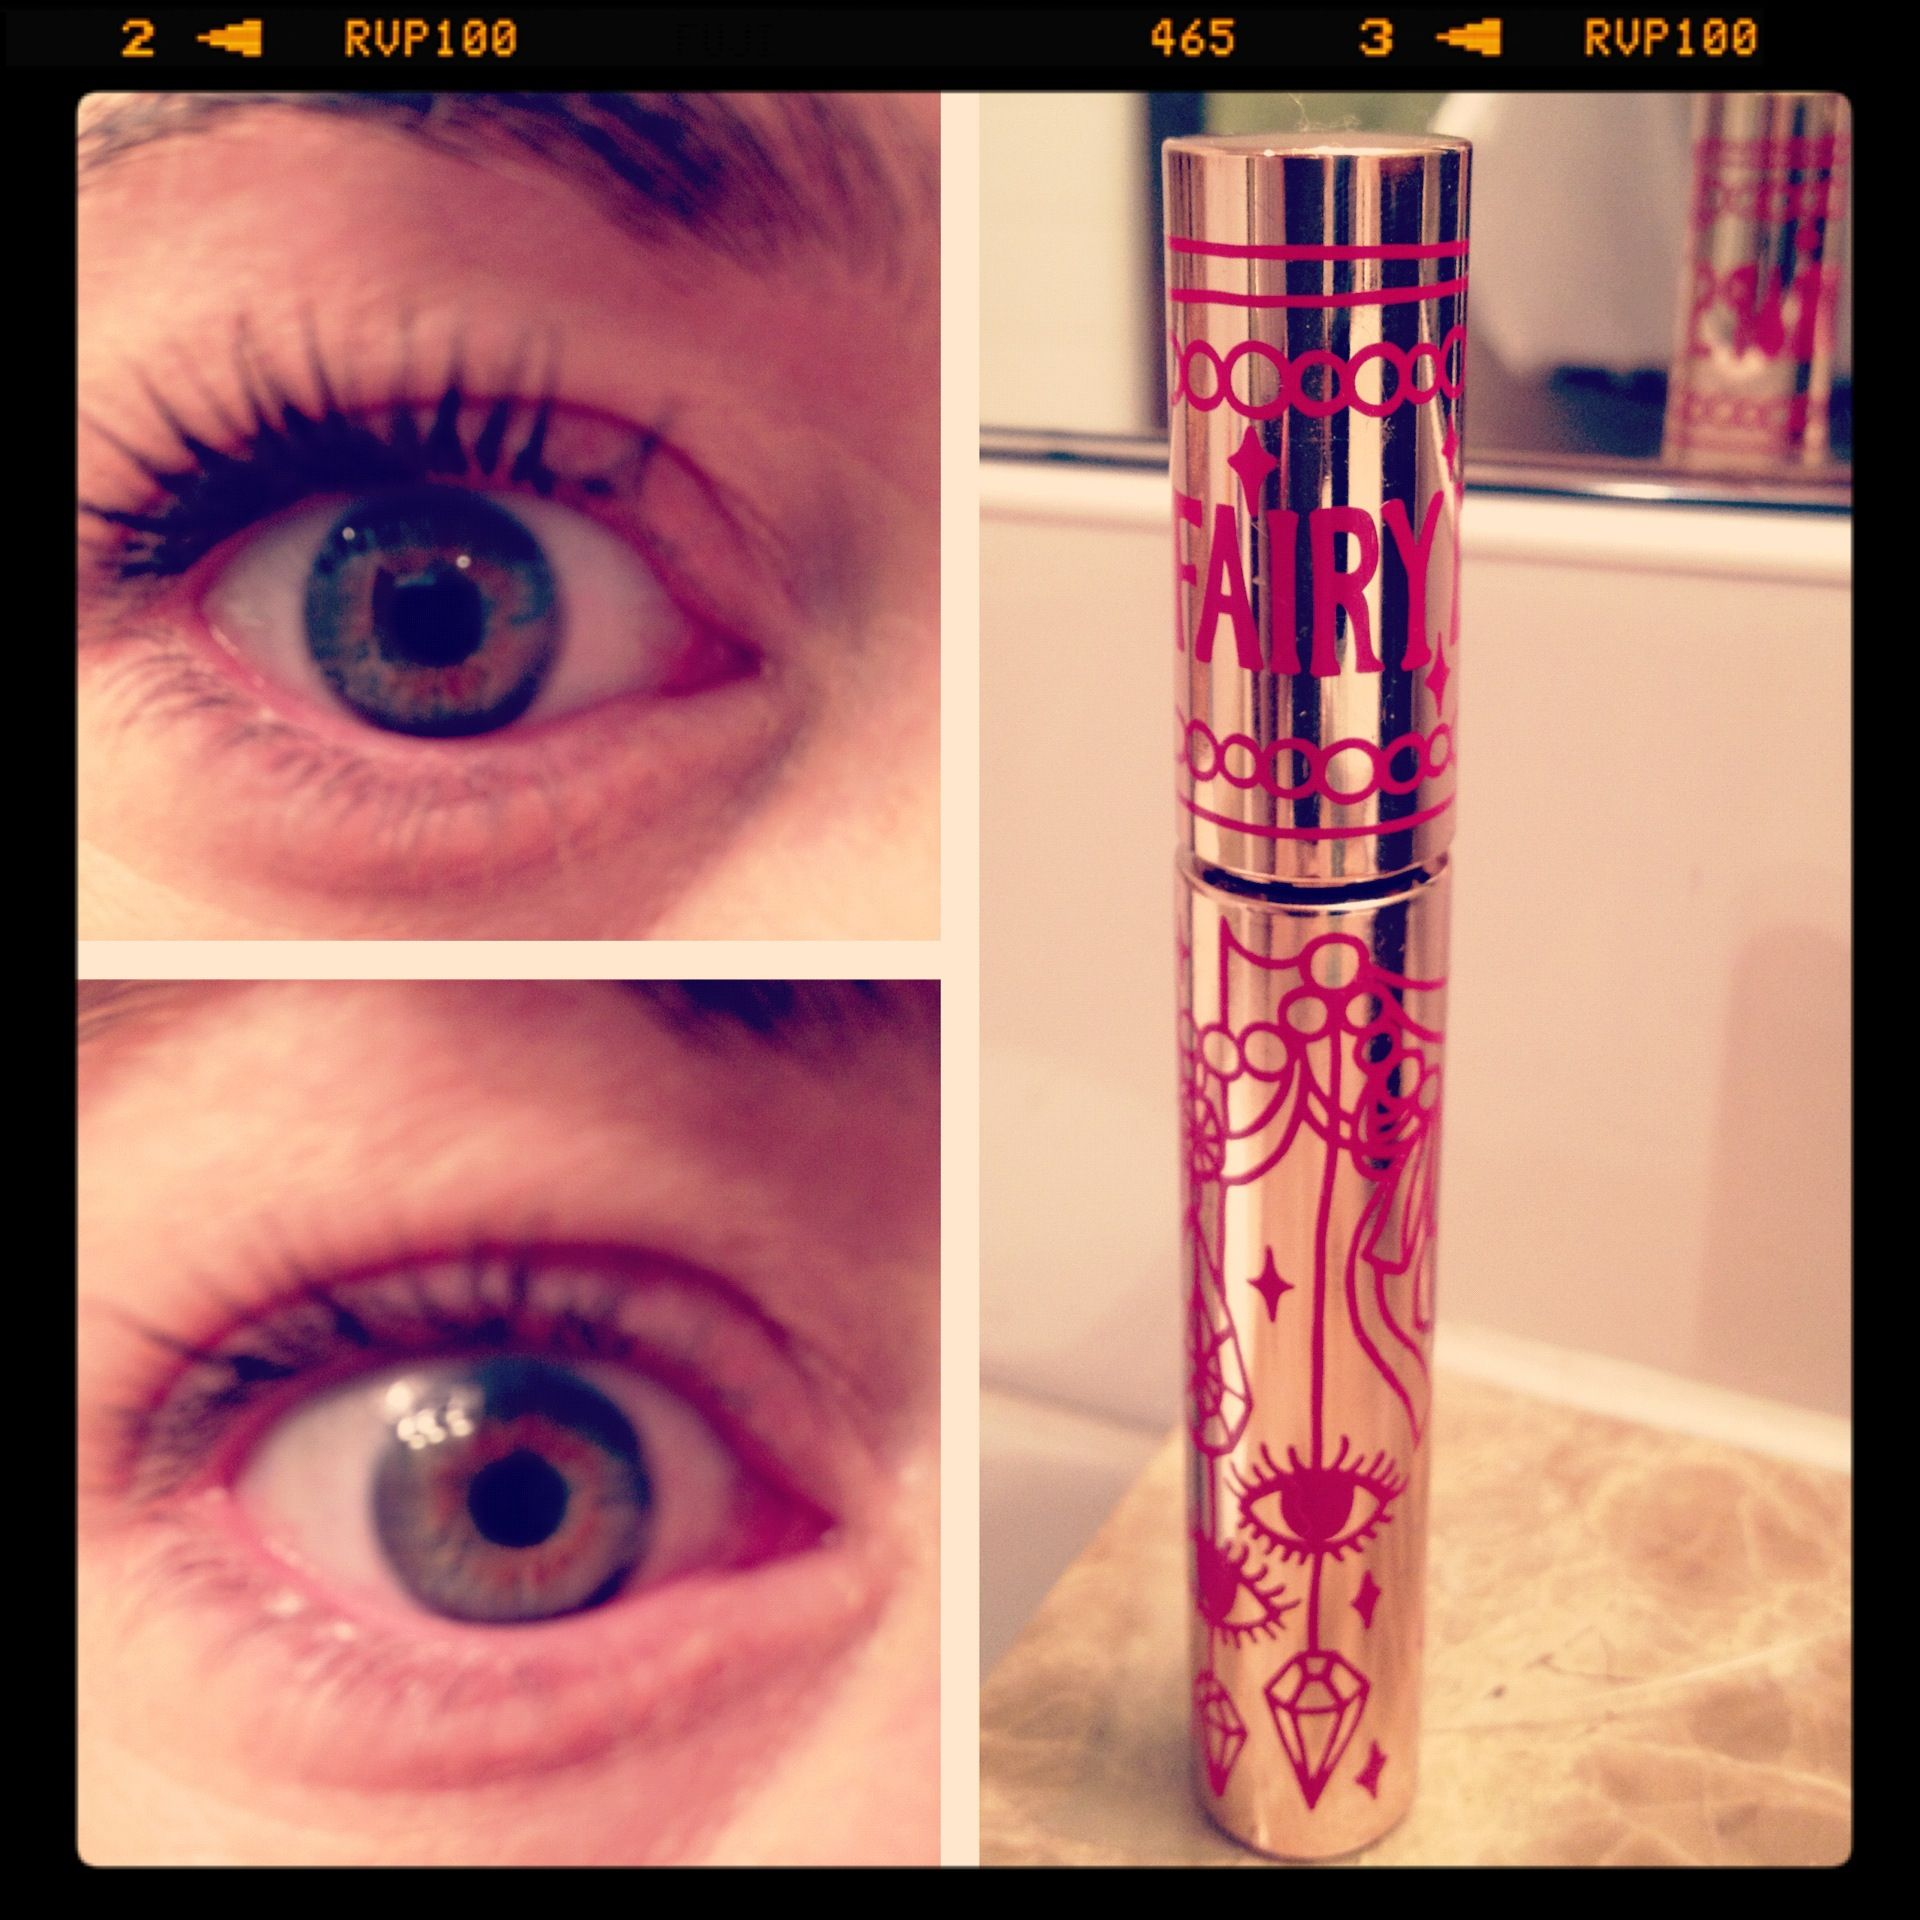 6cd82f14a38 Fairy drops mascara. Mad long lashes @Sephora! | MakeUp | Fairy ...